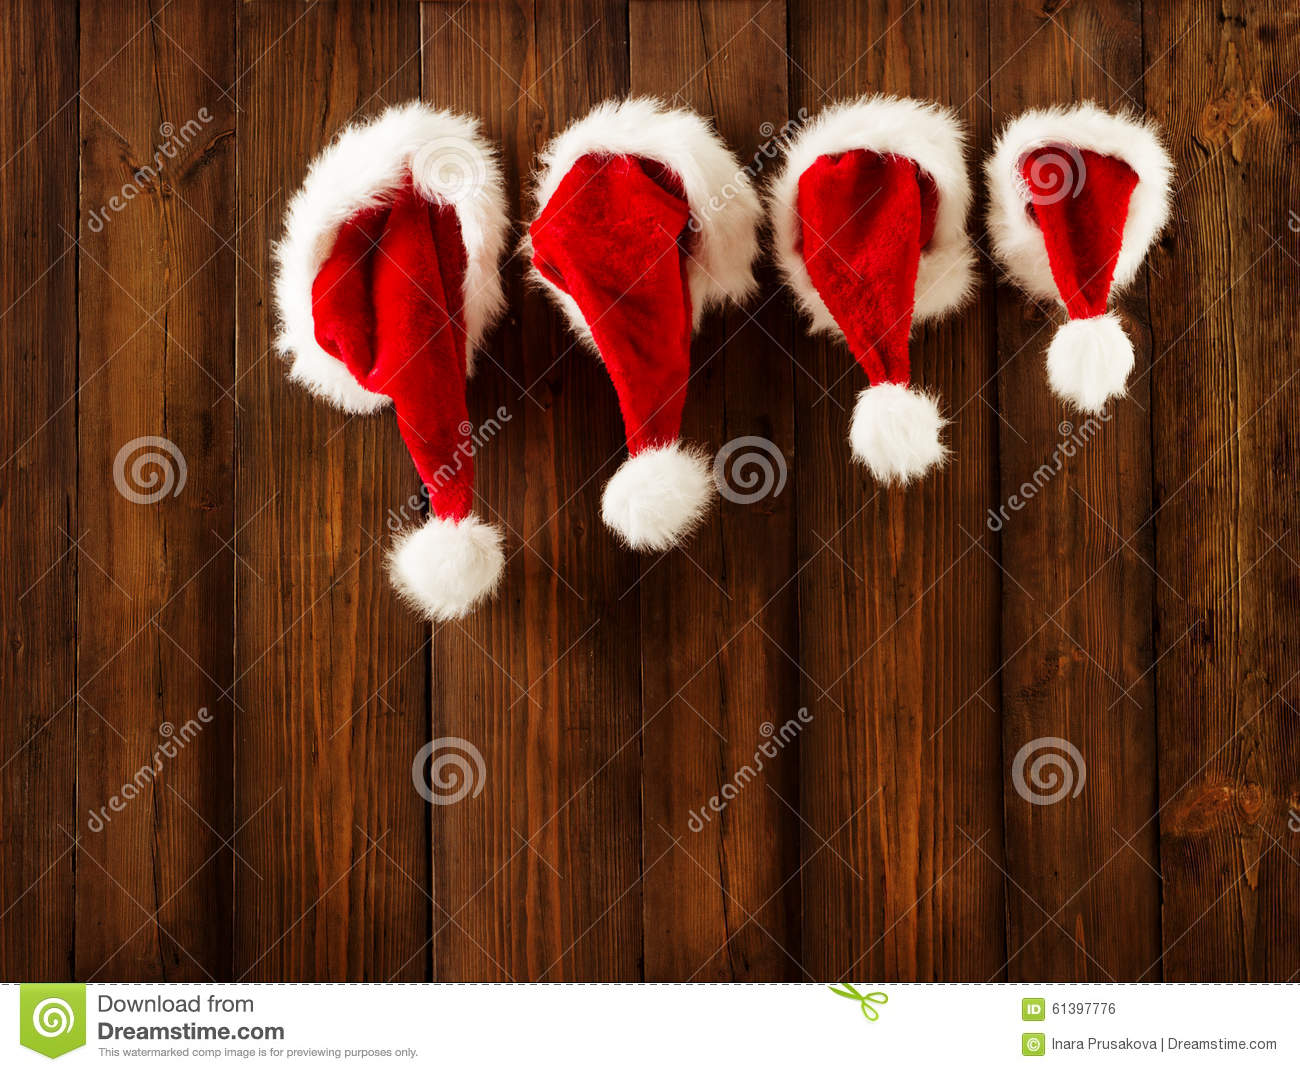 Christmas Family Santa Claus Hats Hanging On Wood Wall